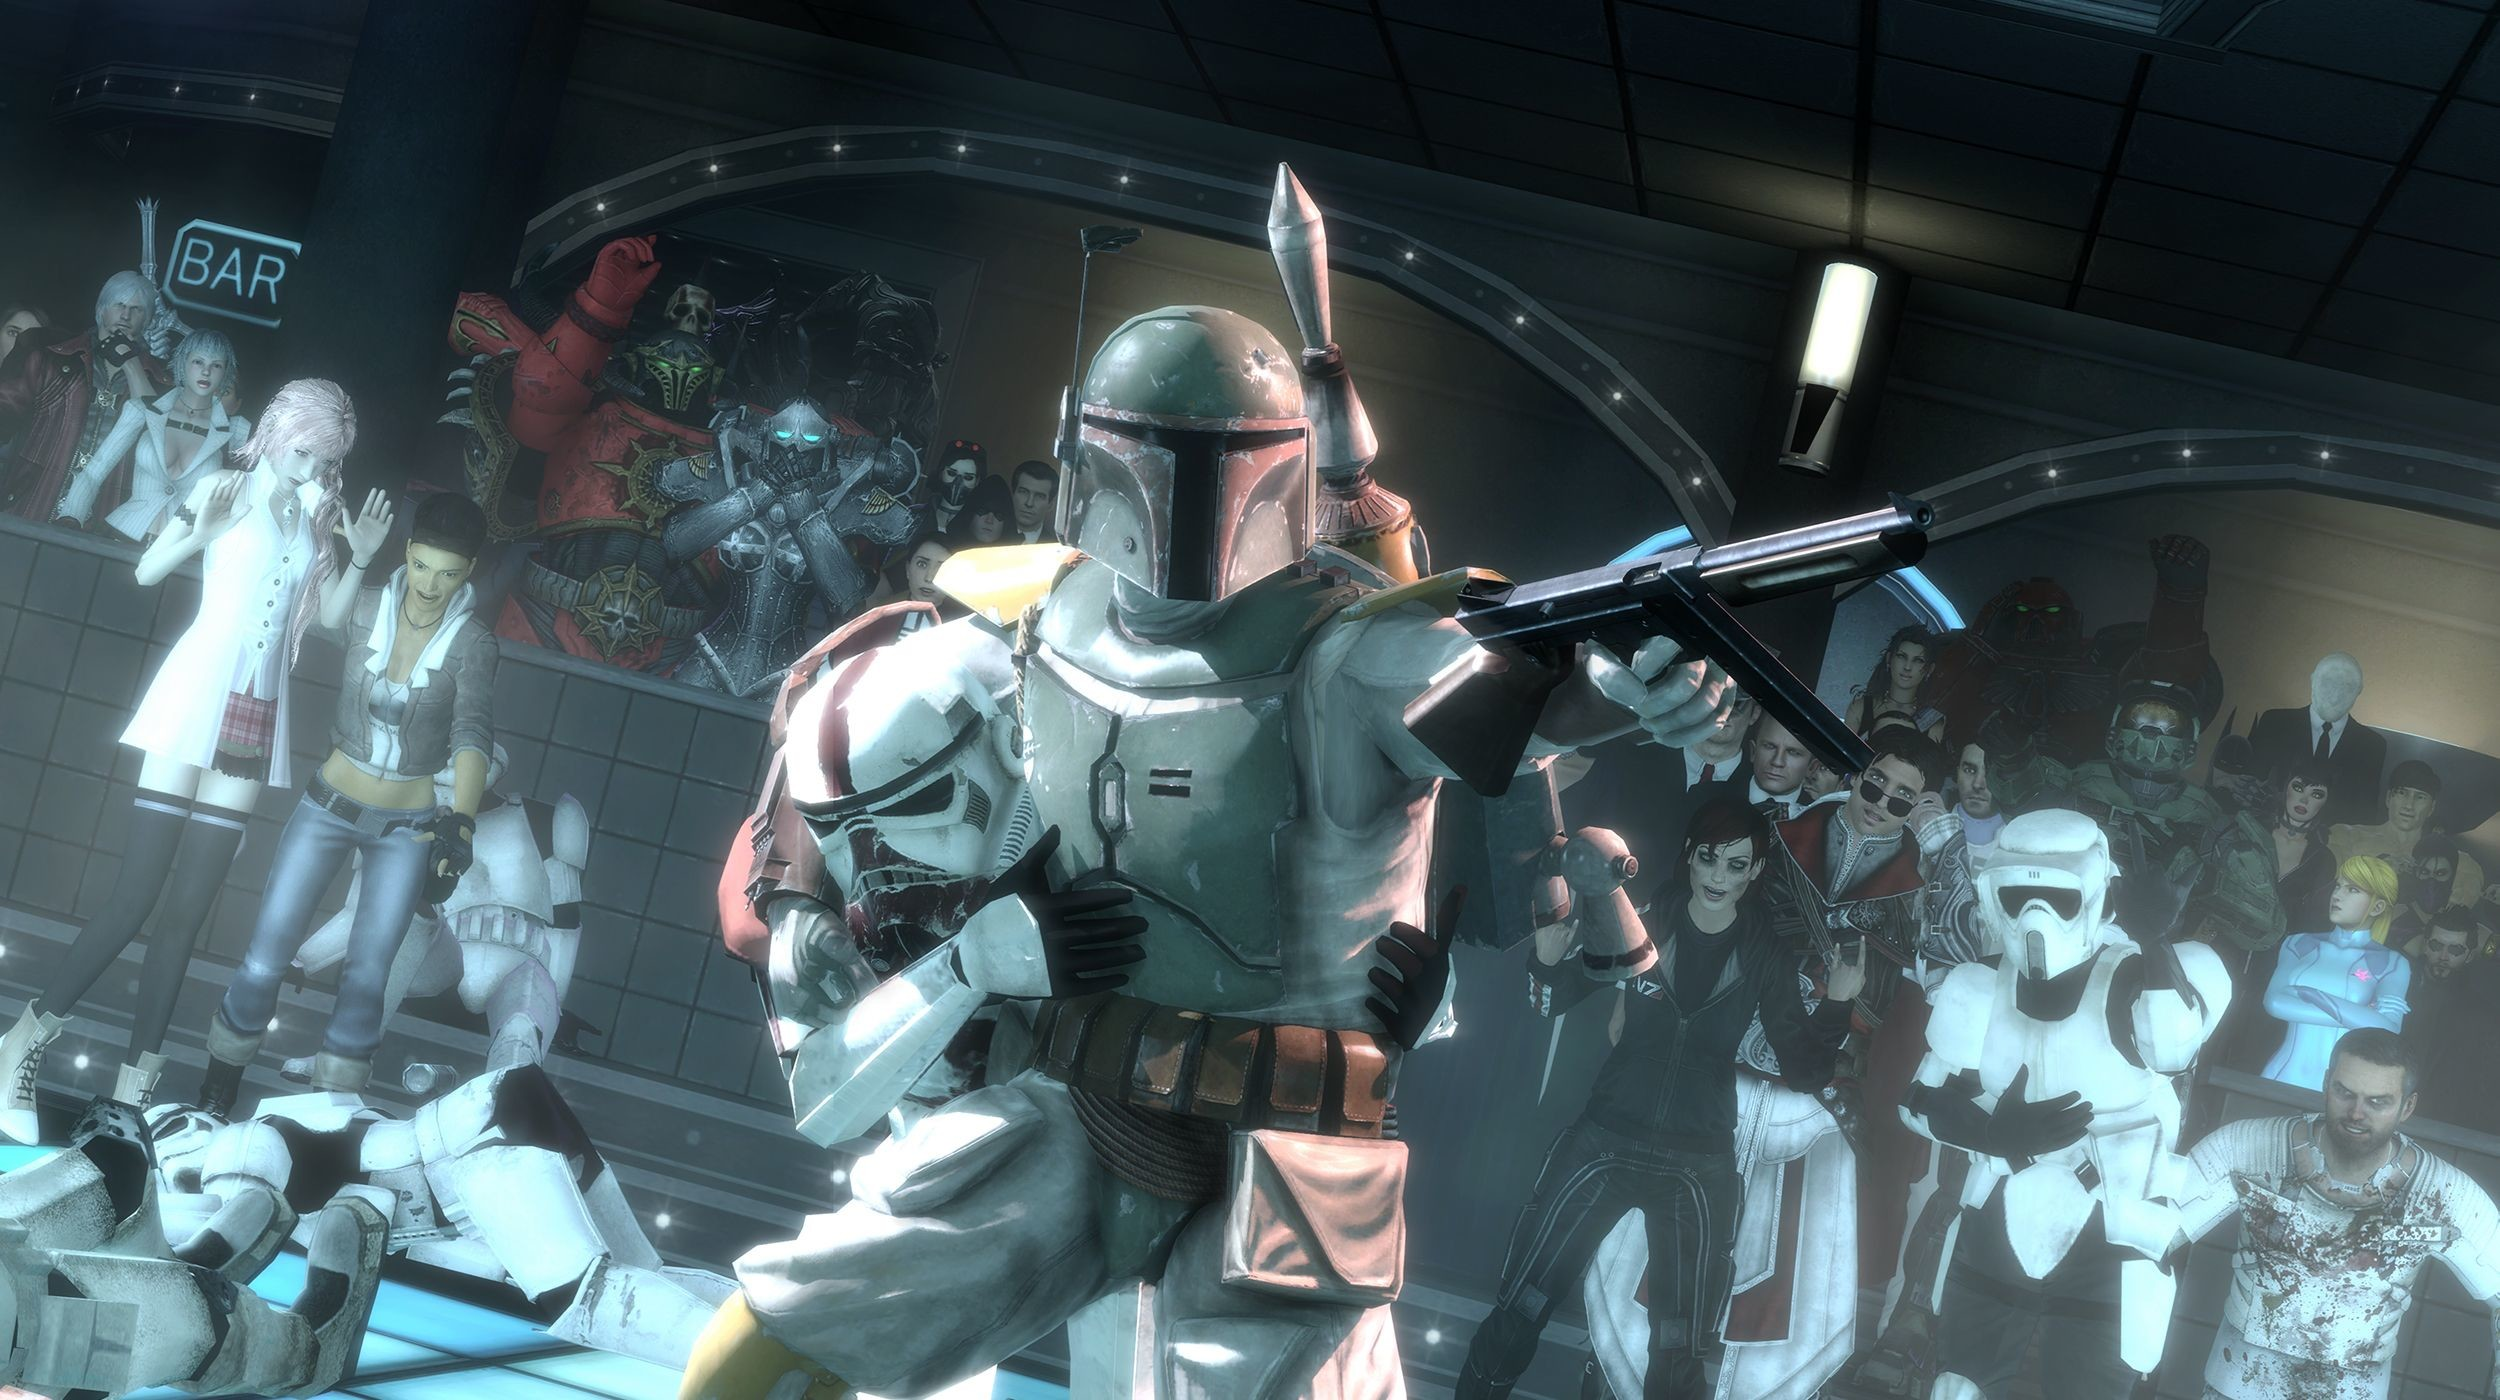 Res: 2500x1400, HD Wallpaper of Boba Fett, Star Wars, garry's mod